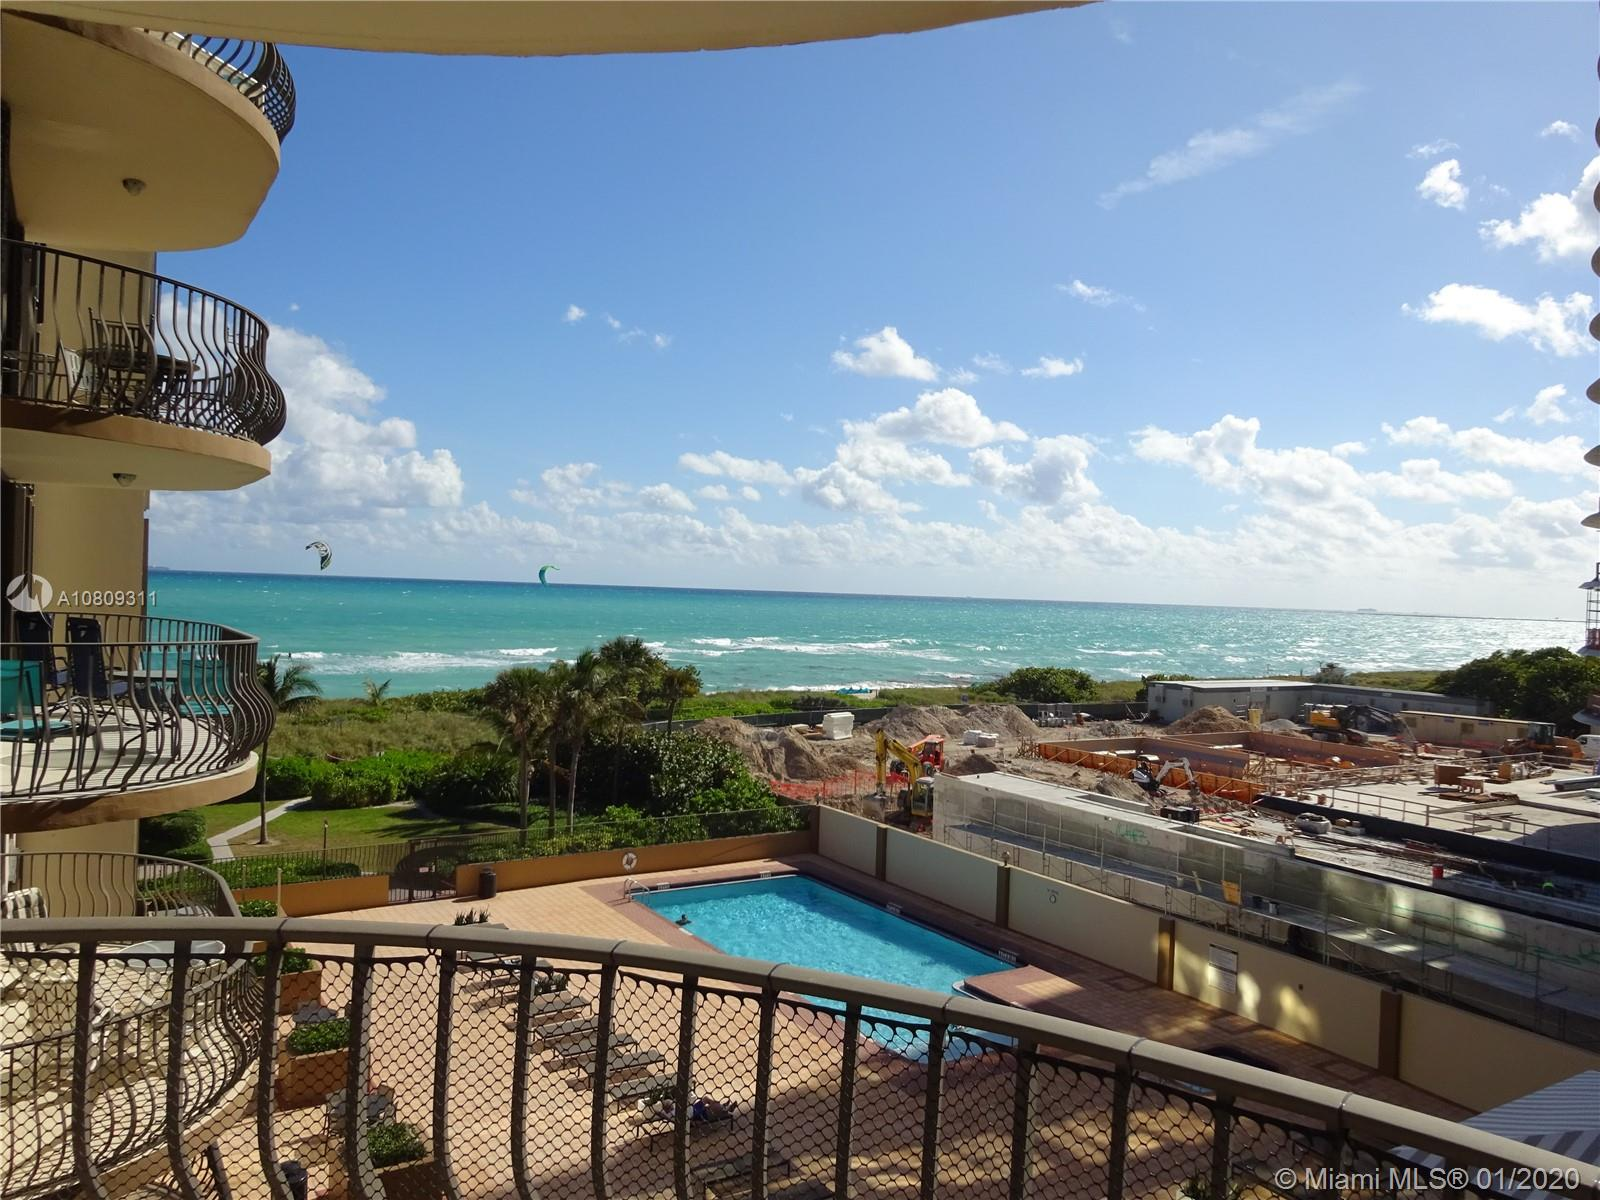 Champlain Towers South #410 - 8777 Collins Ave #410, Surfside, FL 33154